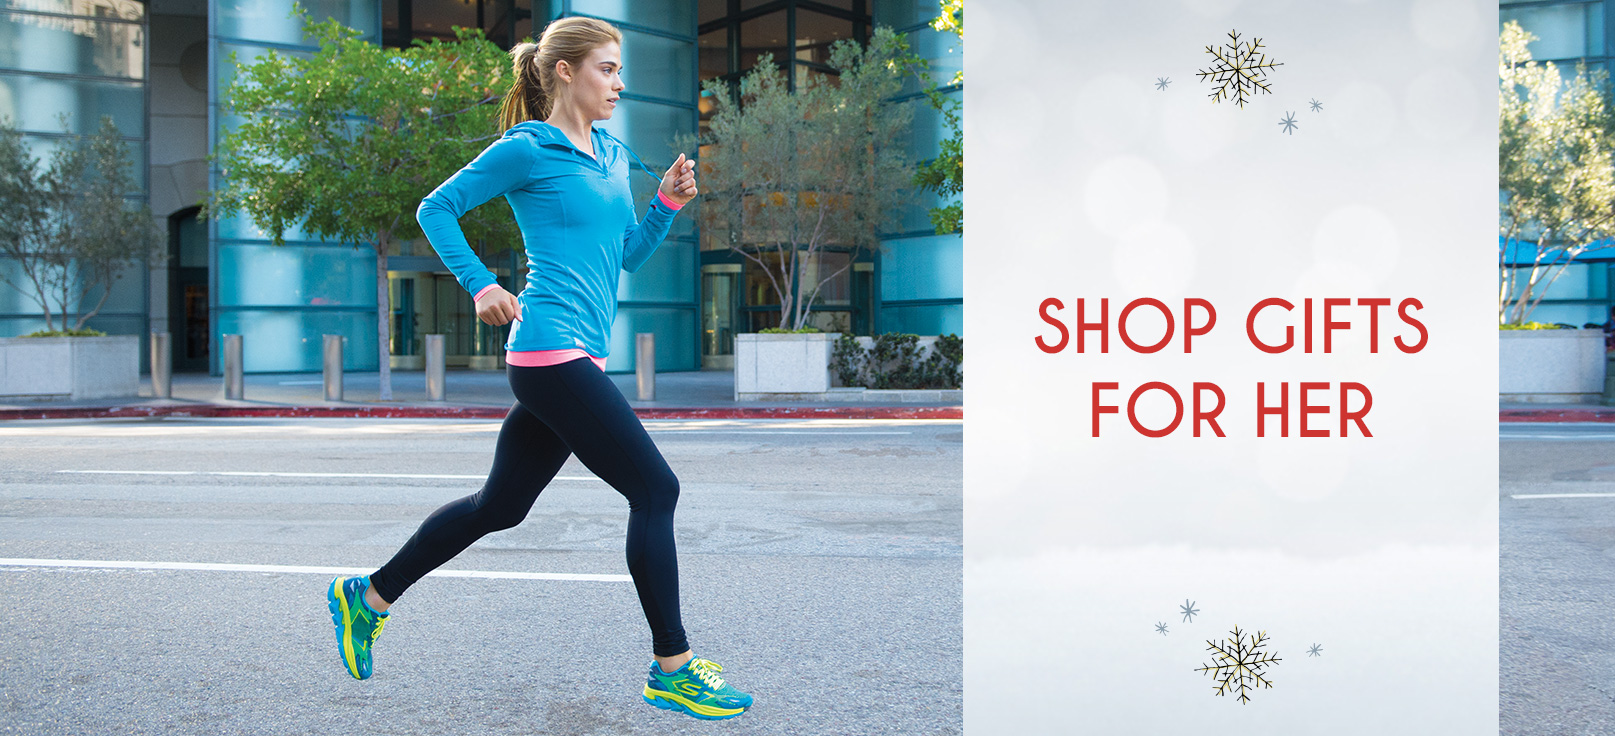 Shop for Skechers Performance Holiday Gifts for women including running shoes, athletic walking shoes, golf shoes and Skechers Performance On the GO shoes